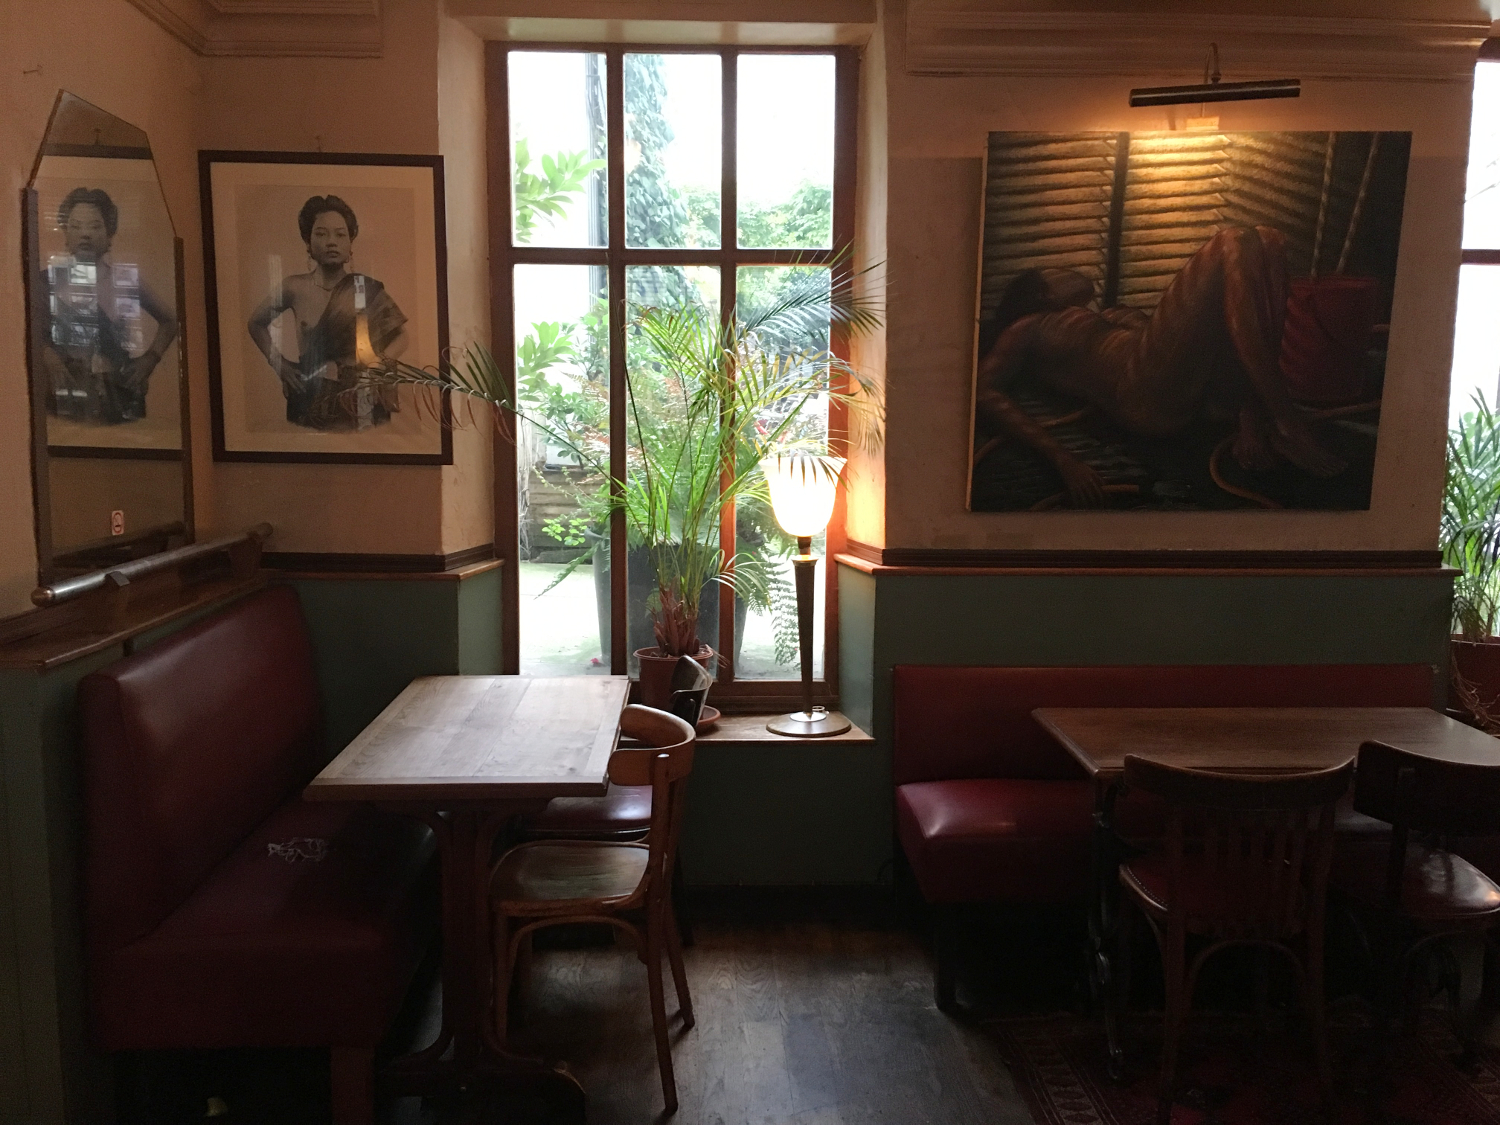 rocaille-blog-paris-cafe-de-lindustrie-restaurant-where-to-eat-3